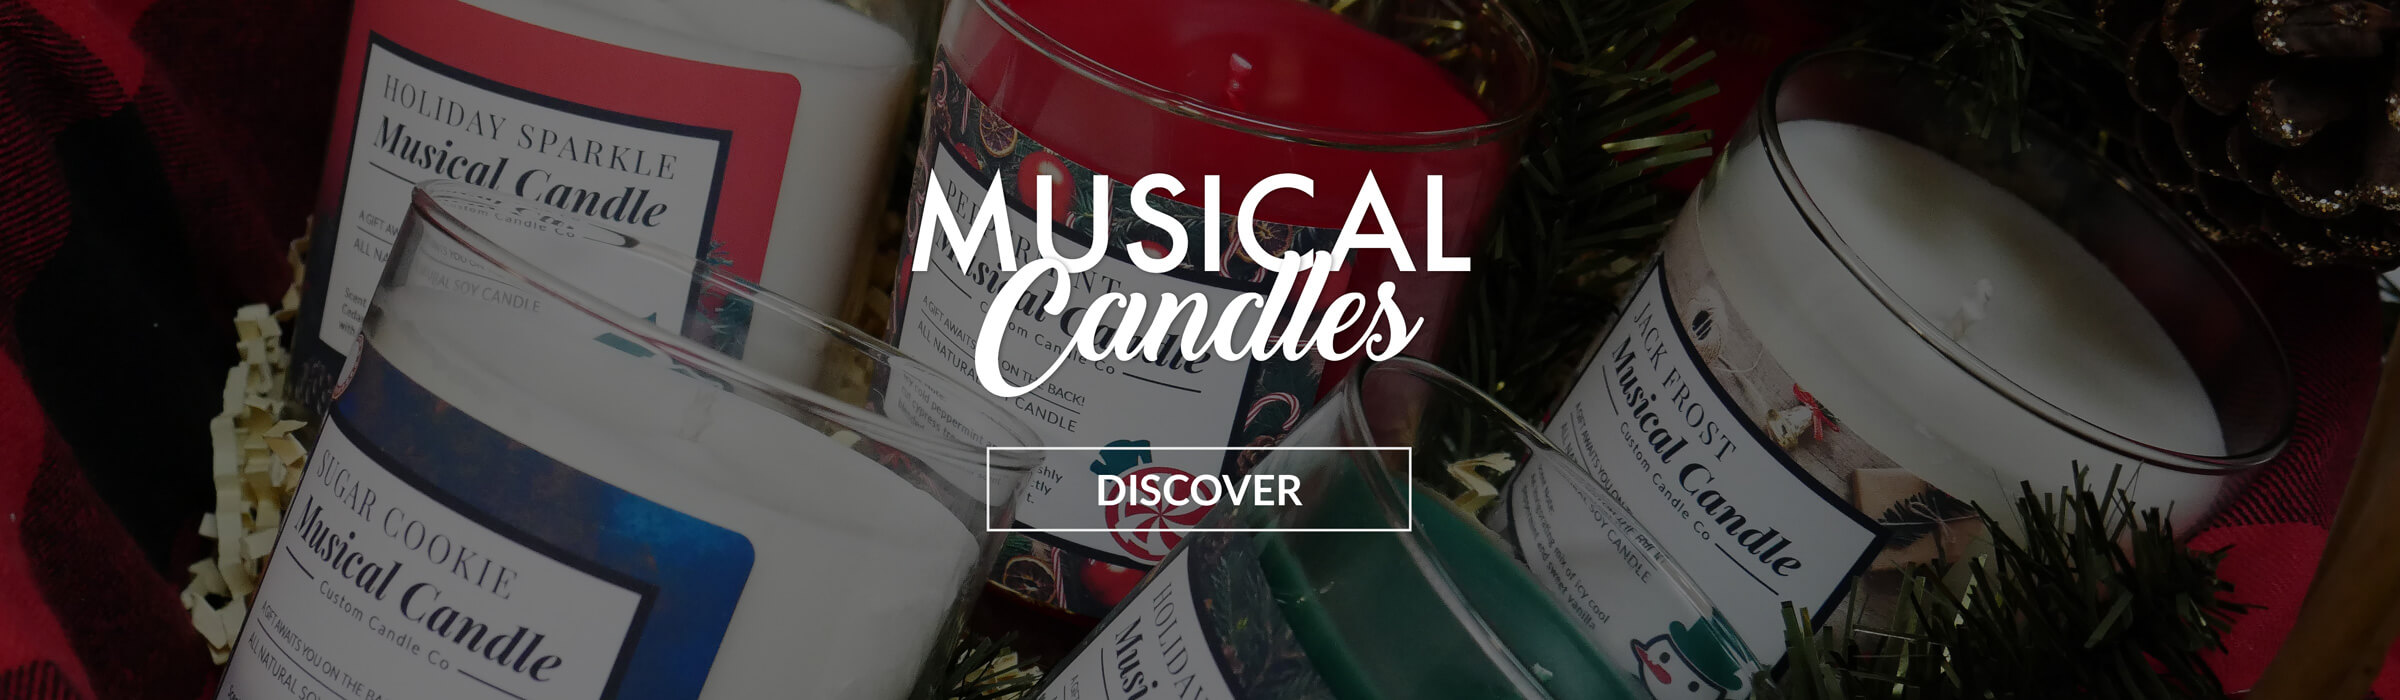 musical candles